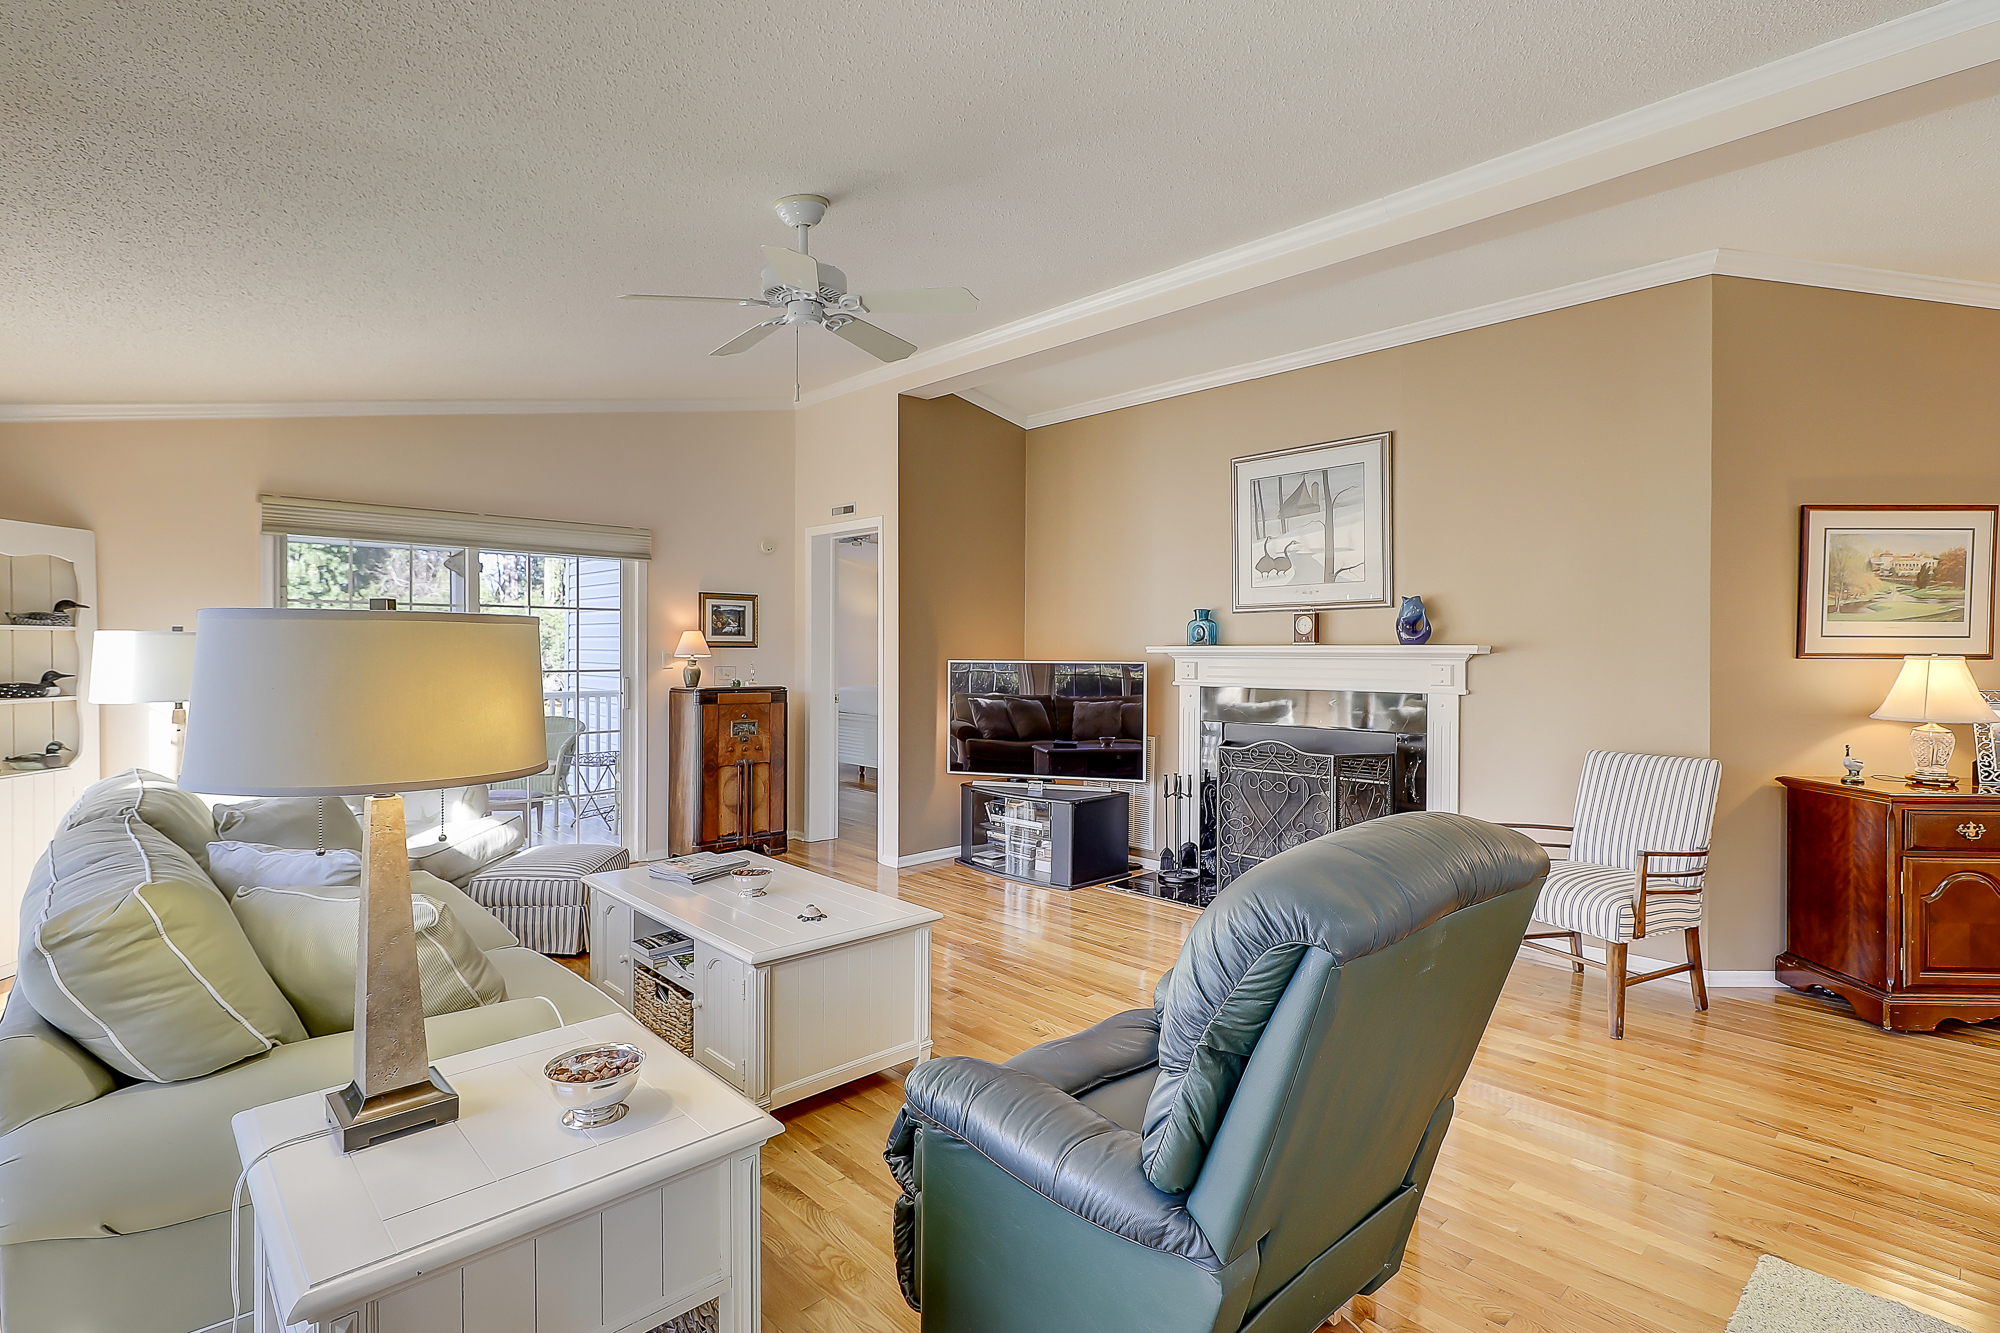 Meticulous Move in Ready Home for sale in Sawmill Forest - 17 Sawmill Forest Drive